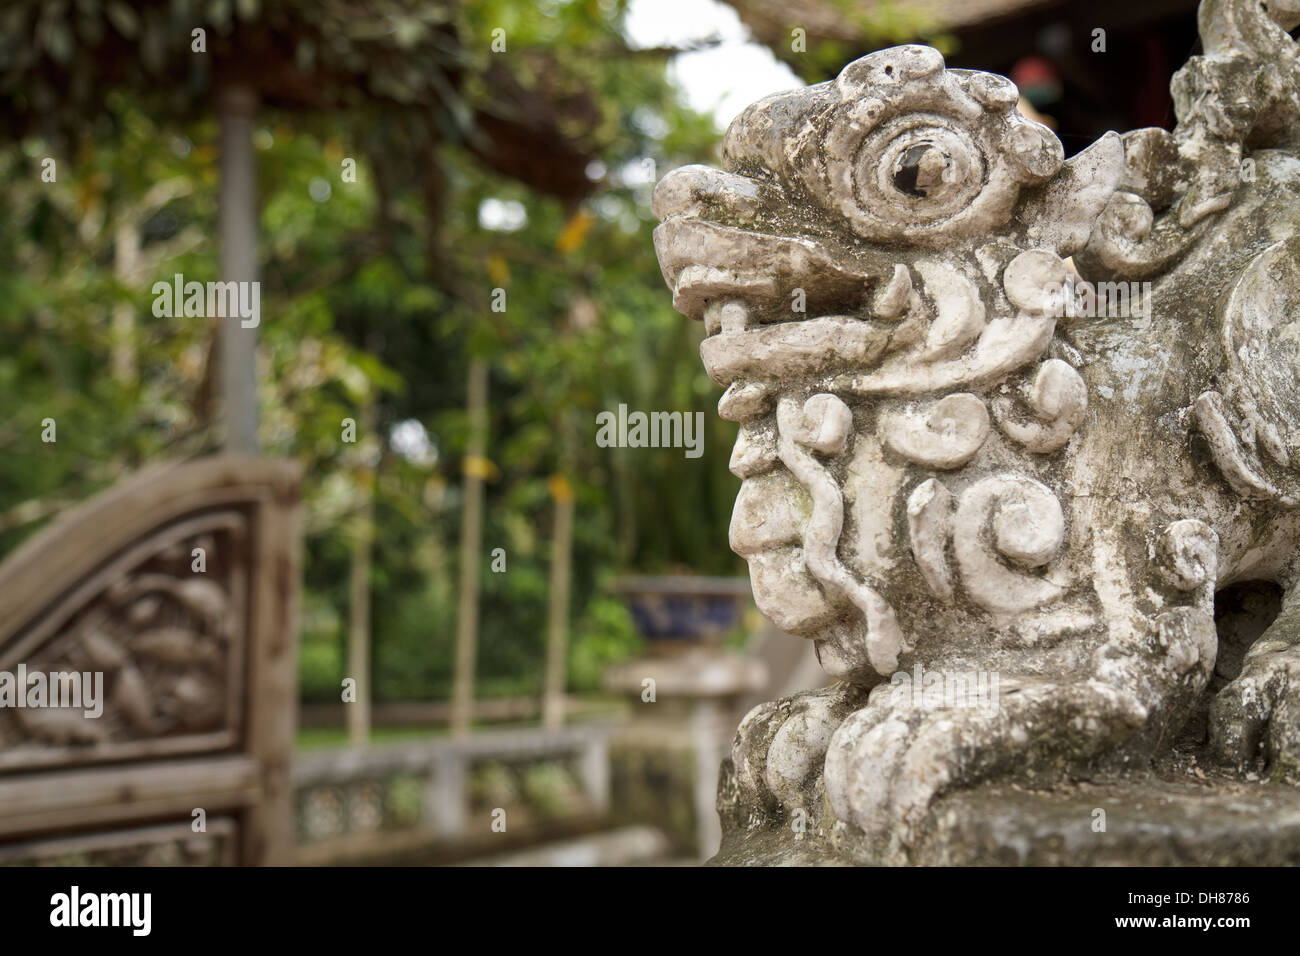 Shot of sculpture of a dragon at the steps to the One Pillar Pagoda in Hanoi. - Stock Image